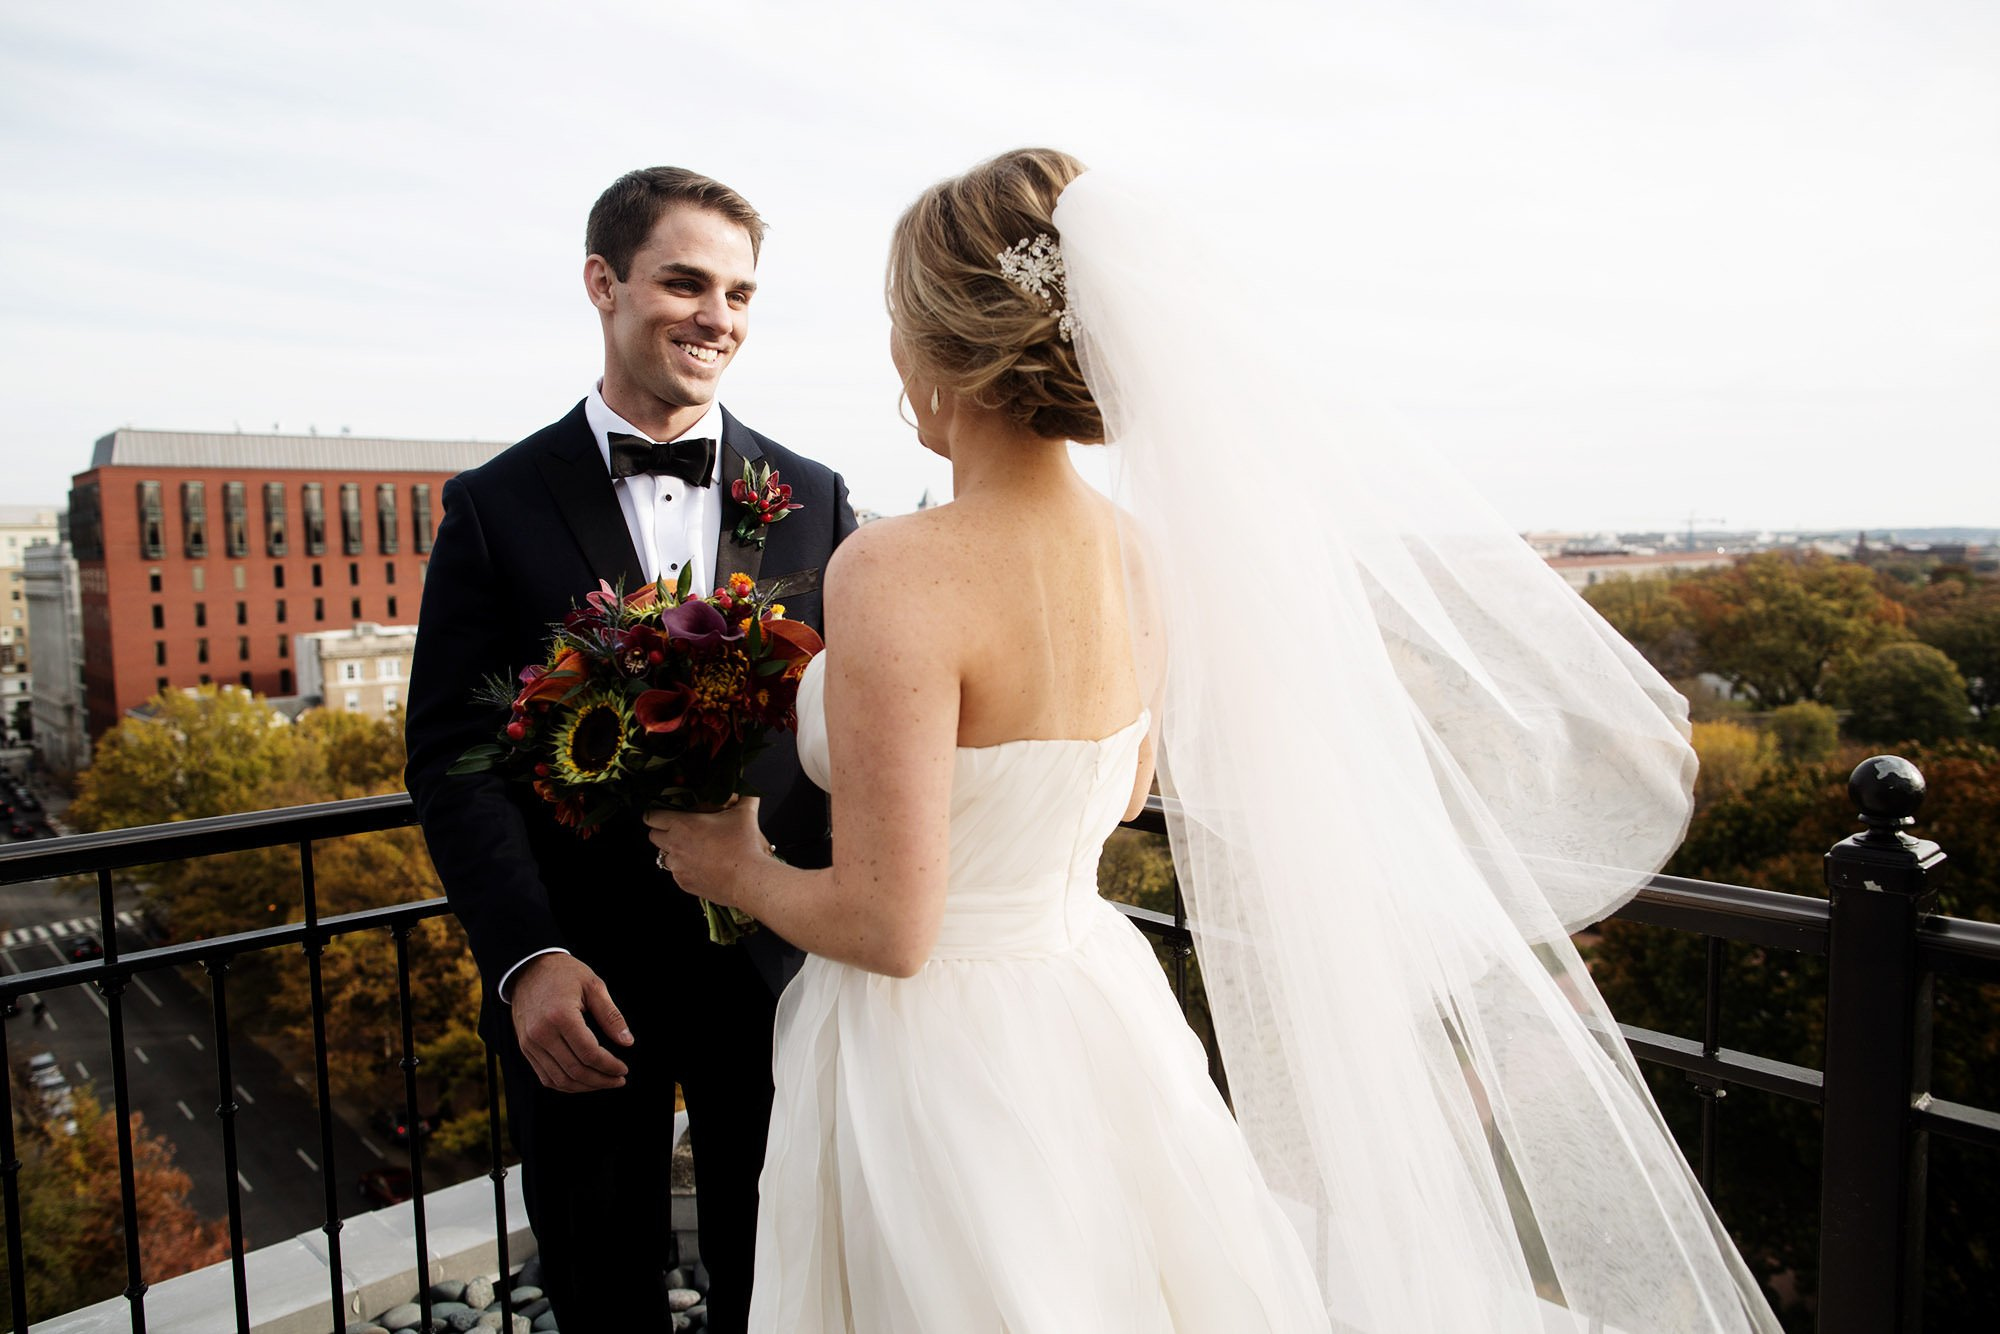 The bride and groom share their first look prior to the Hay Adams DC Wedding ceremony.